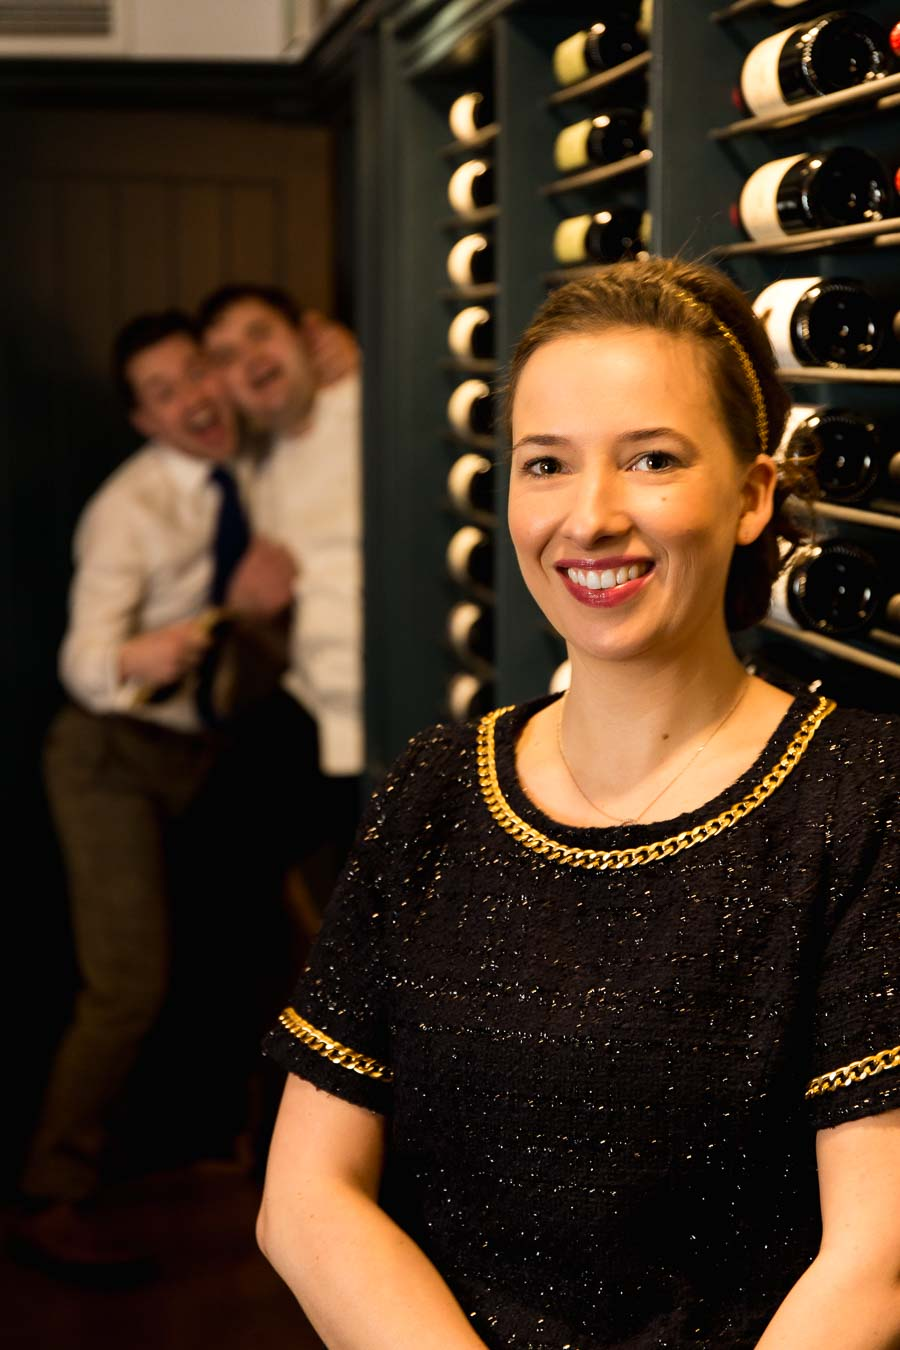 Portrait of Margriet Crump, Sommelier in the wine attic of The Oxford Blue Pub whilst Steven Ellis and Dan Crump joke around photo bombing in the background